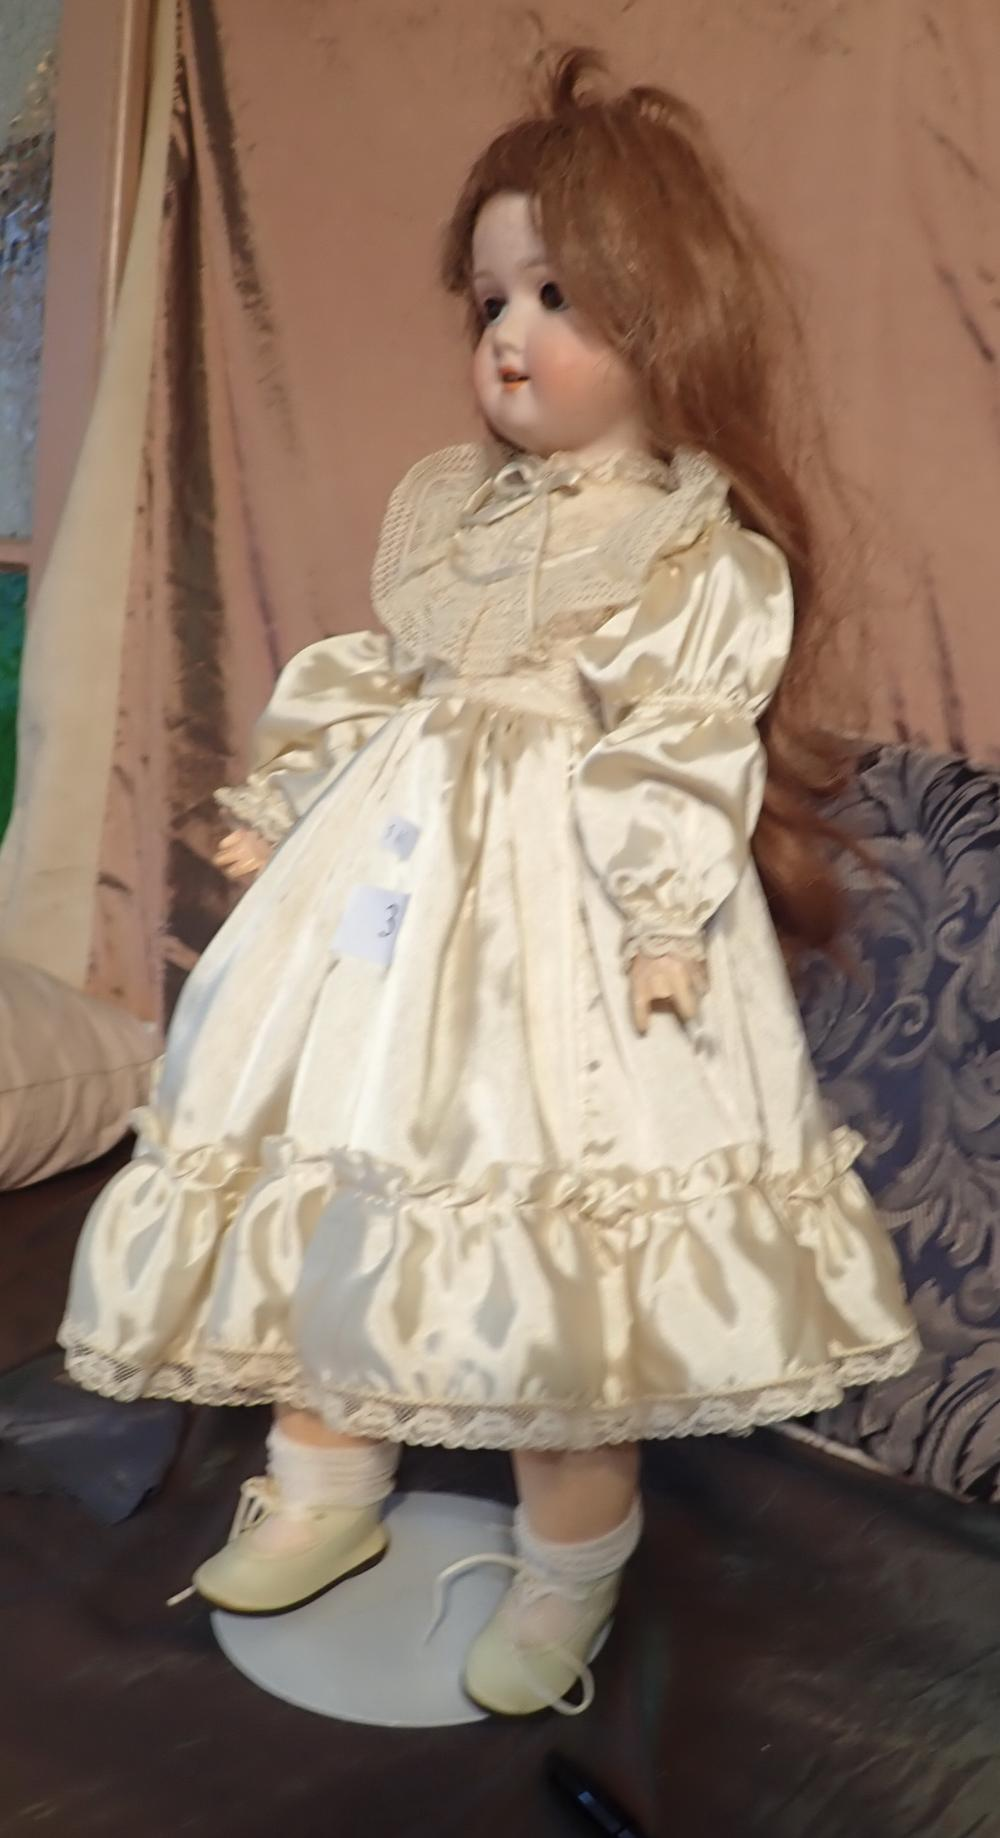 """21"""" SCHOENAU HOOFMEISTER DOLL MARKED 1909 - 3 1/2 GERMANY - WITH SILK DRESS AND PANTALOONS - 1 FINGER MISSING ON LEFT HAND - BODY BEEN REPAINTED IN SPOTS"""